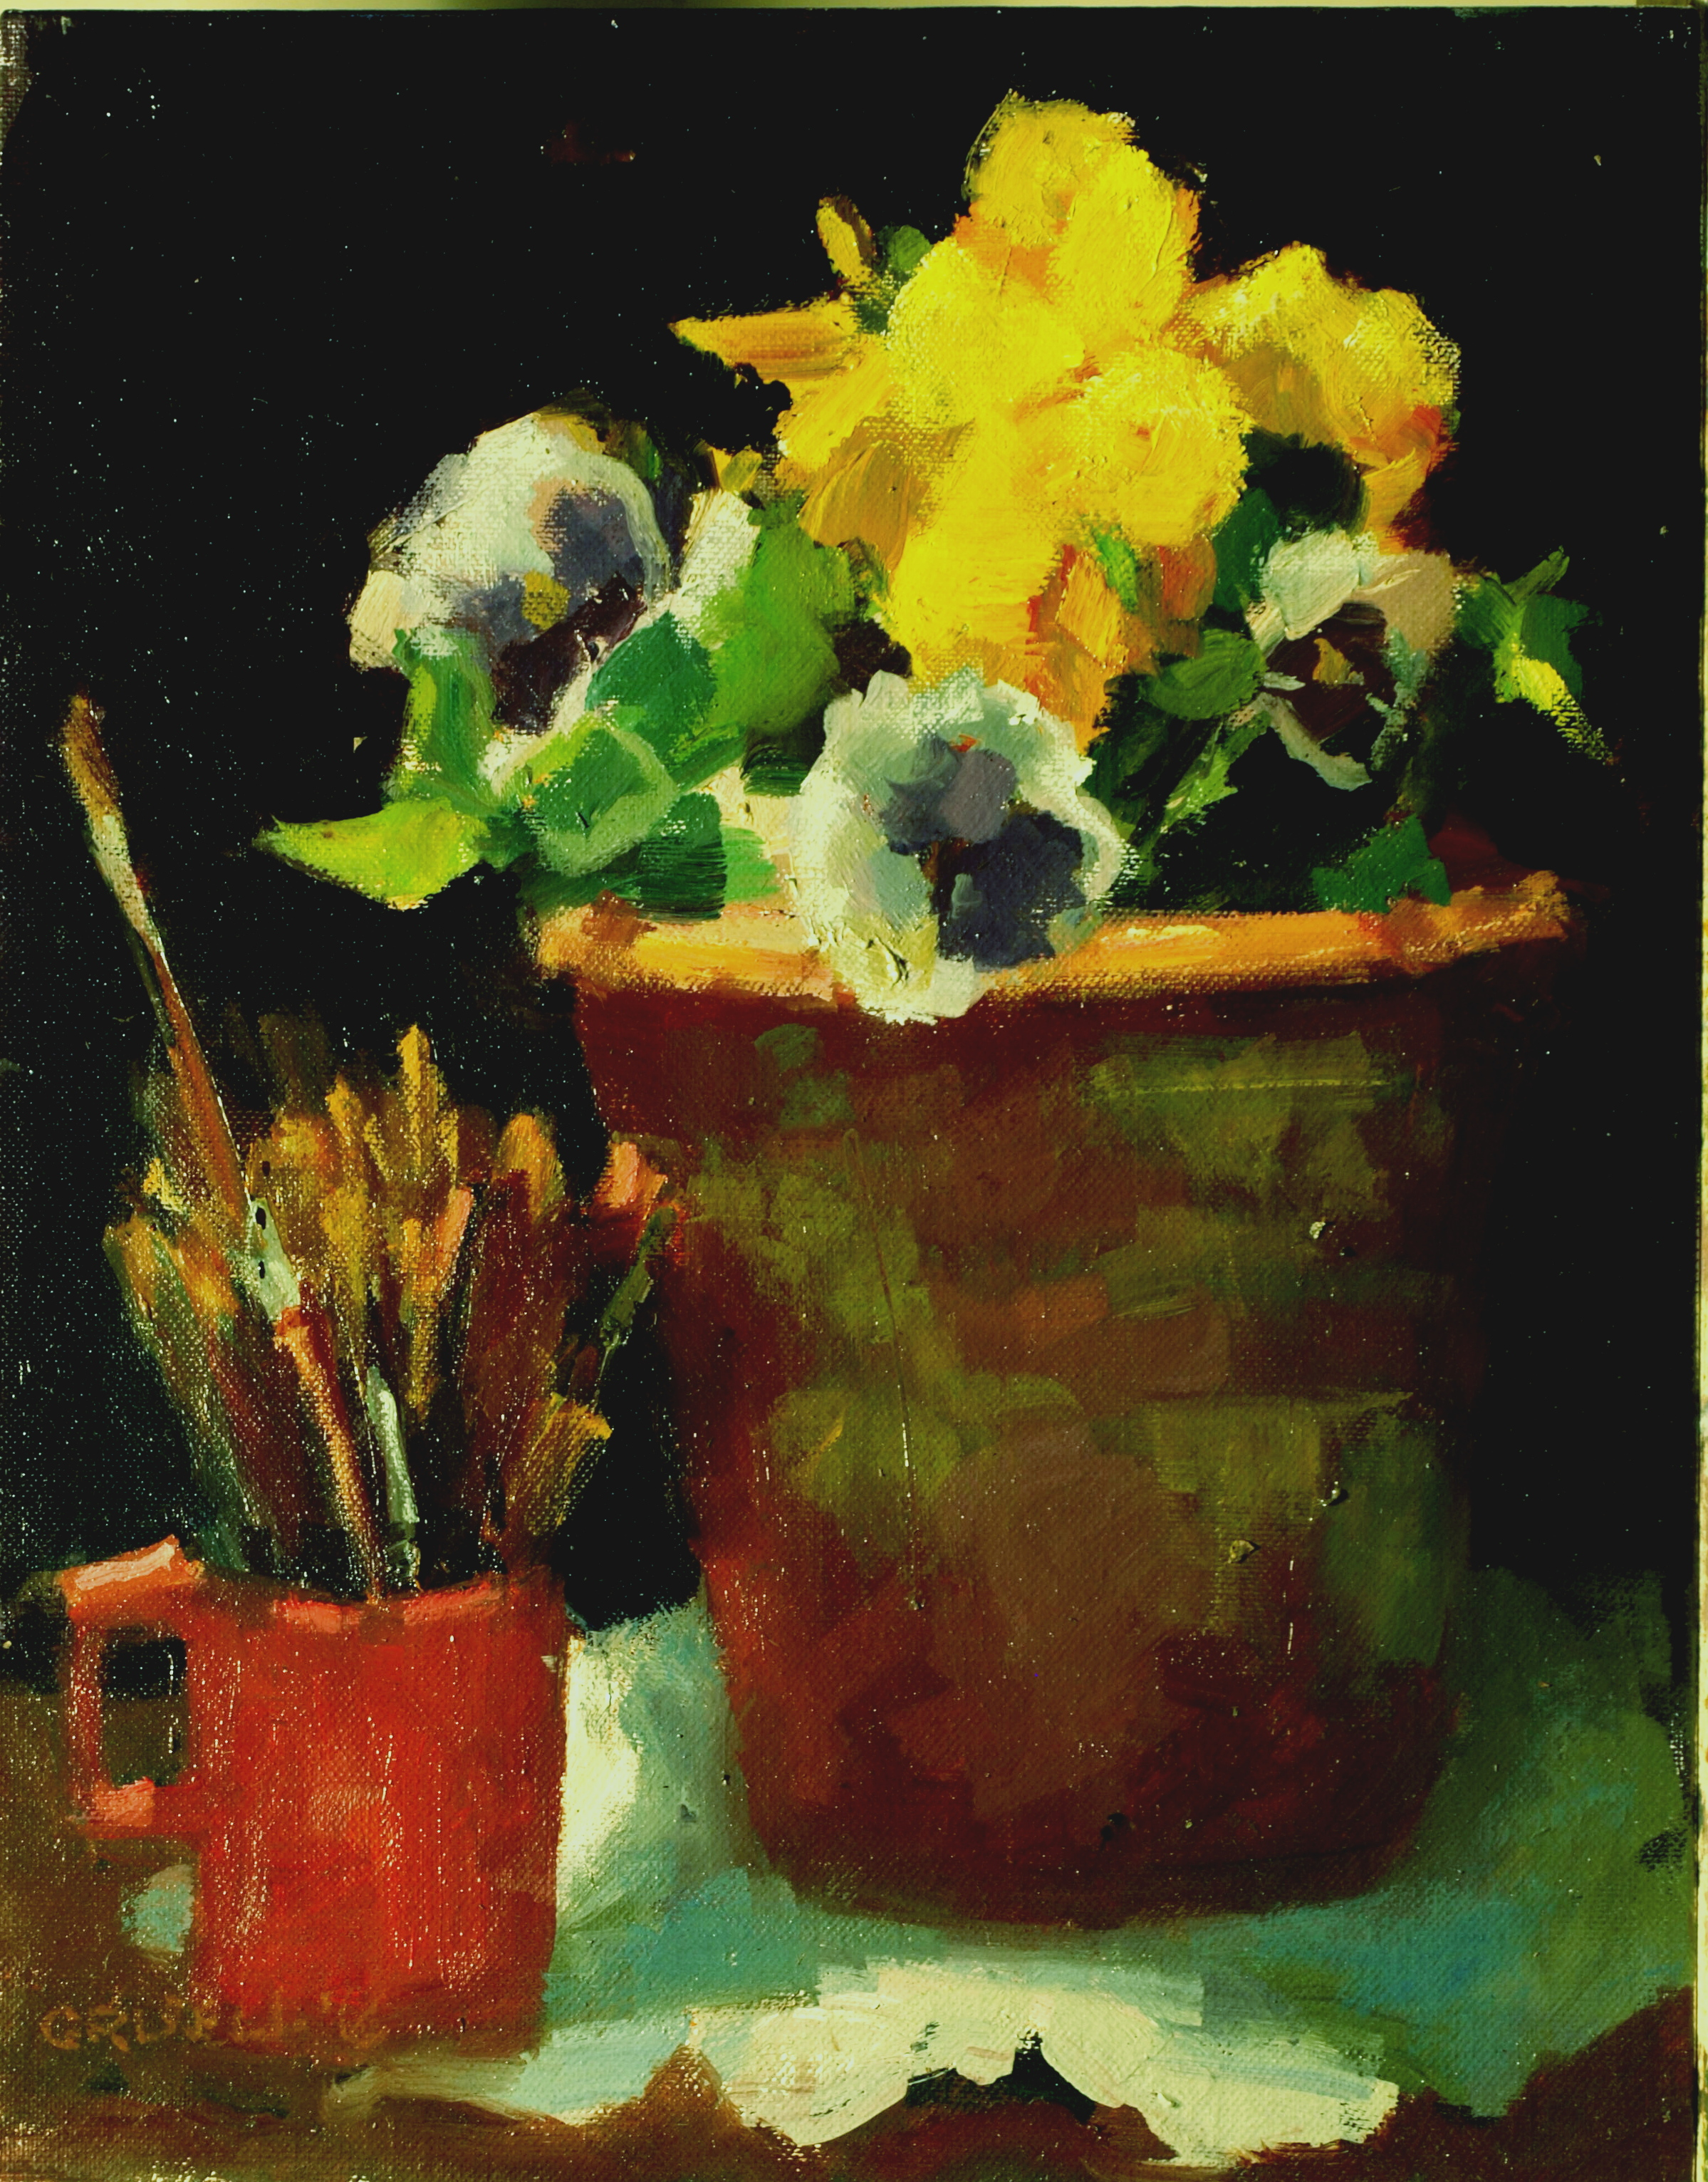 Pansies and Paintbrushes, Oil on Canvas on Panel, 11 x 14 Inches, by Susan Grisell, $275